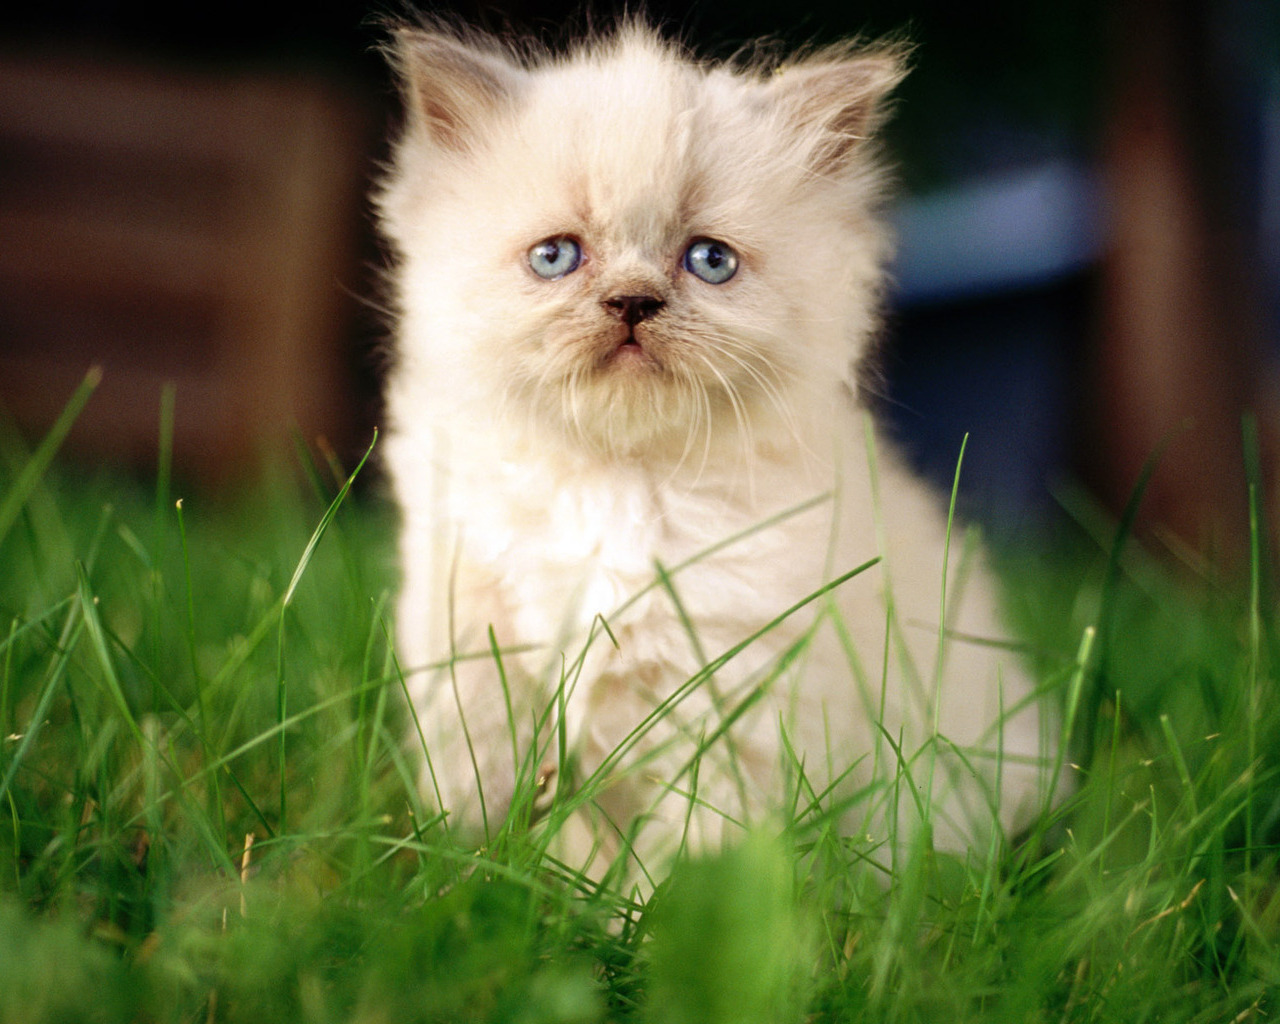 Strictly Wallpaper: Wallpapers For Cat Lovers 4